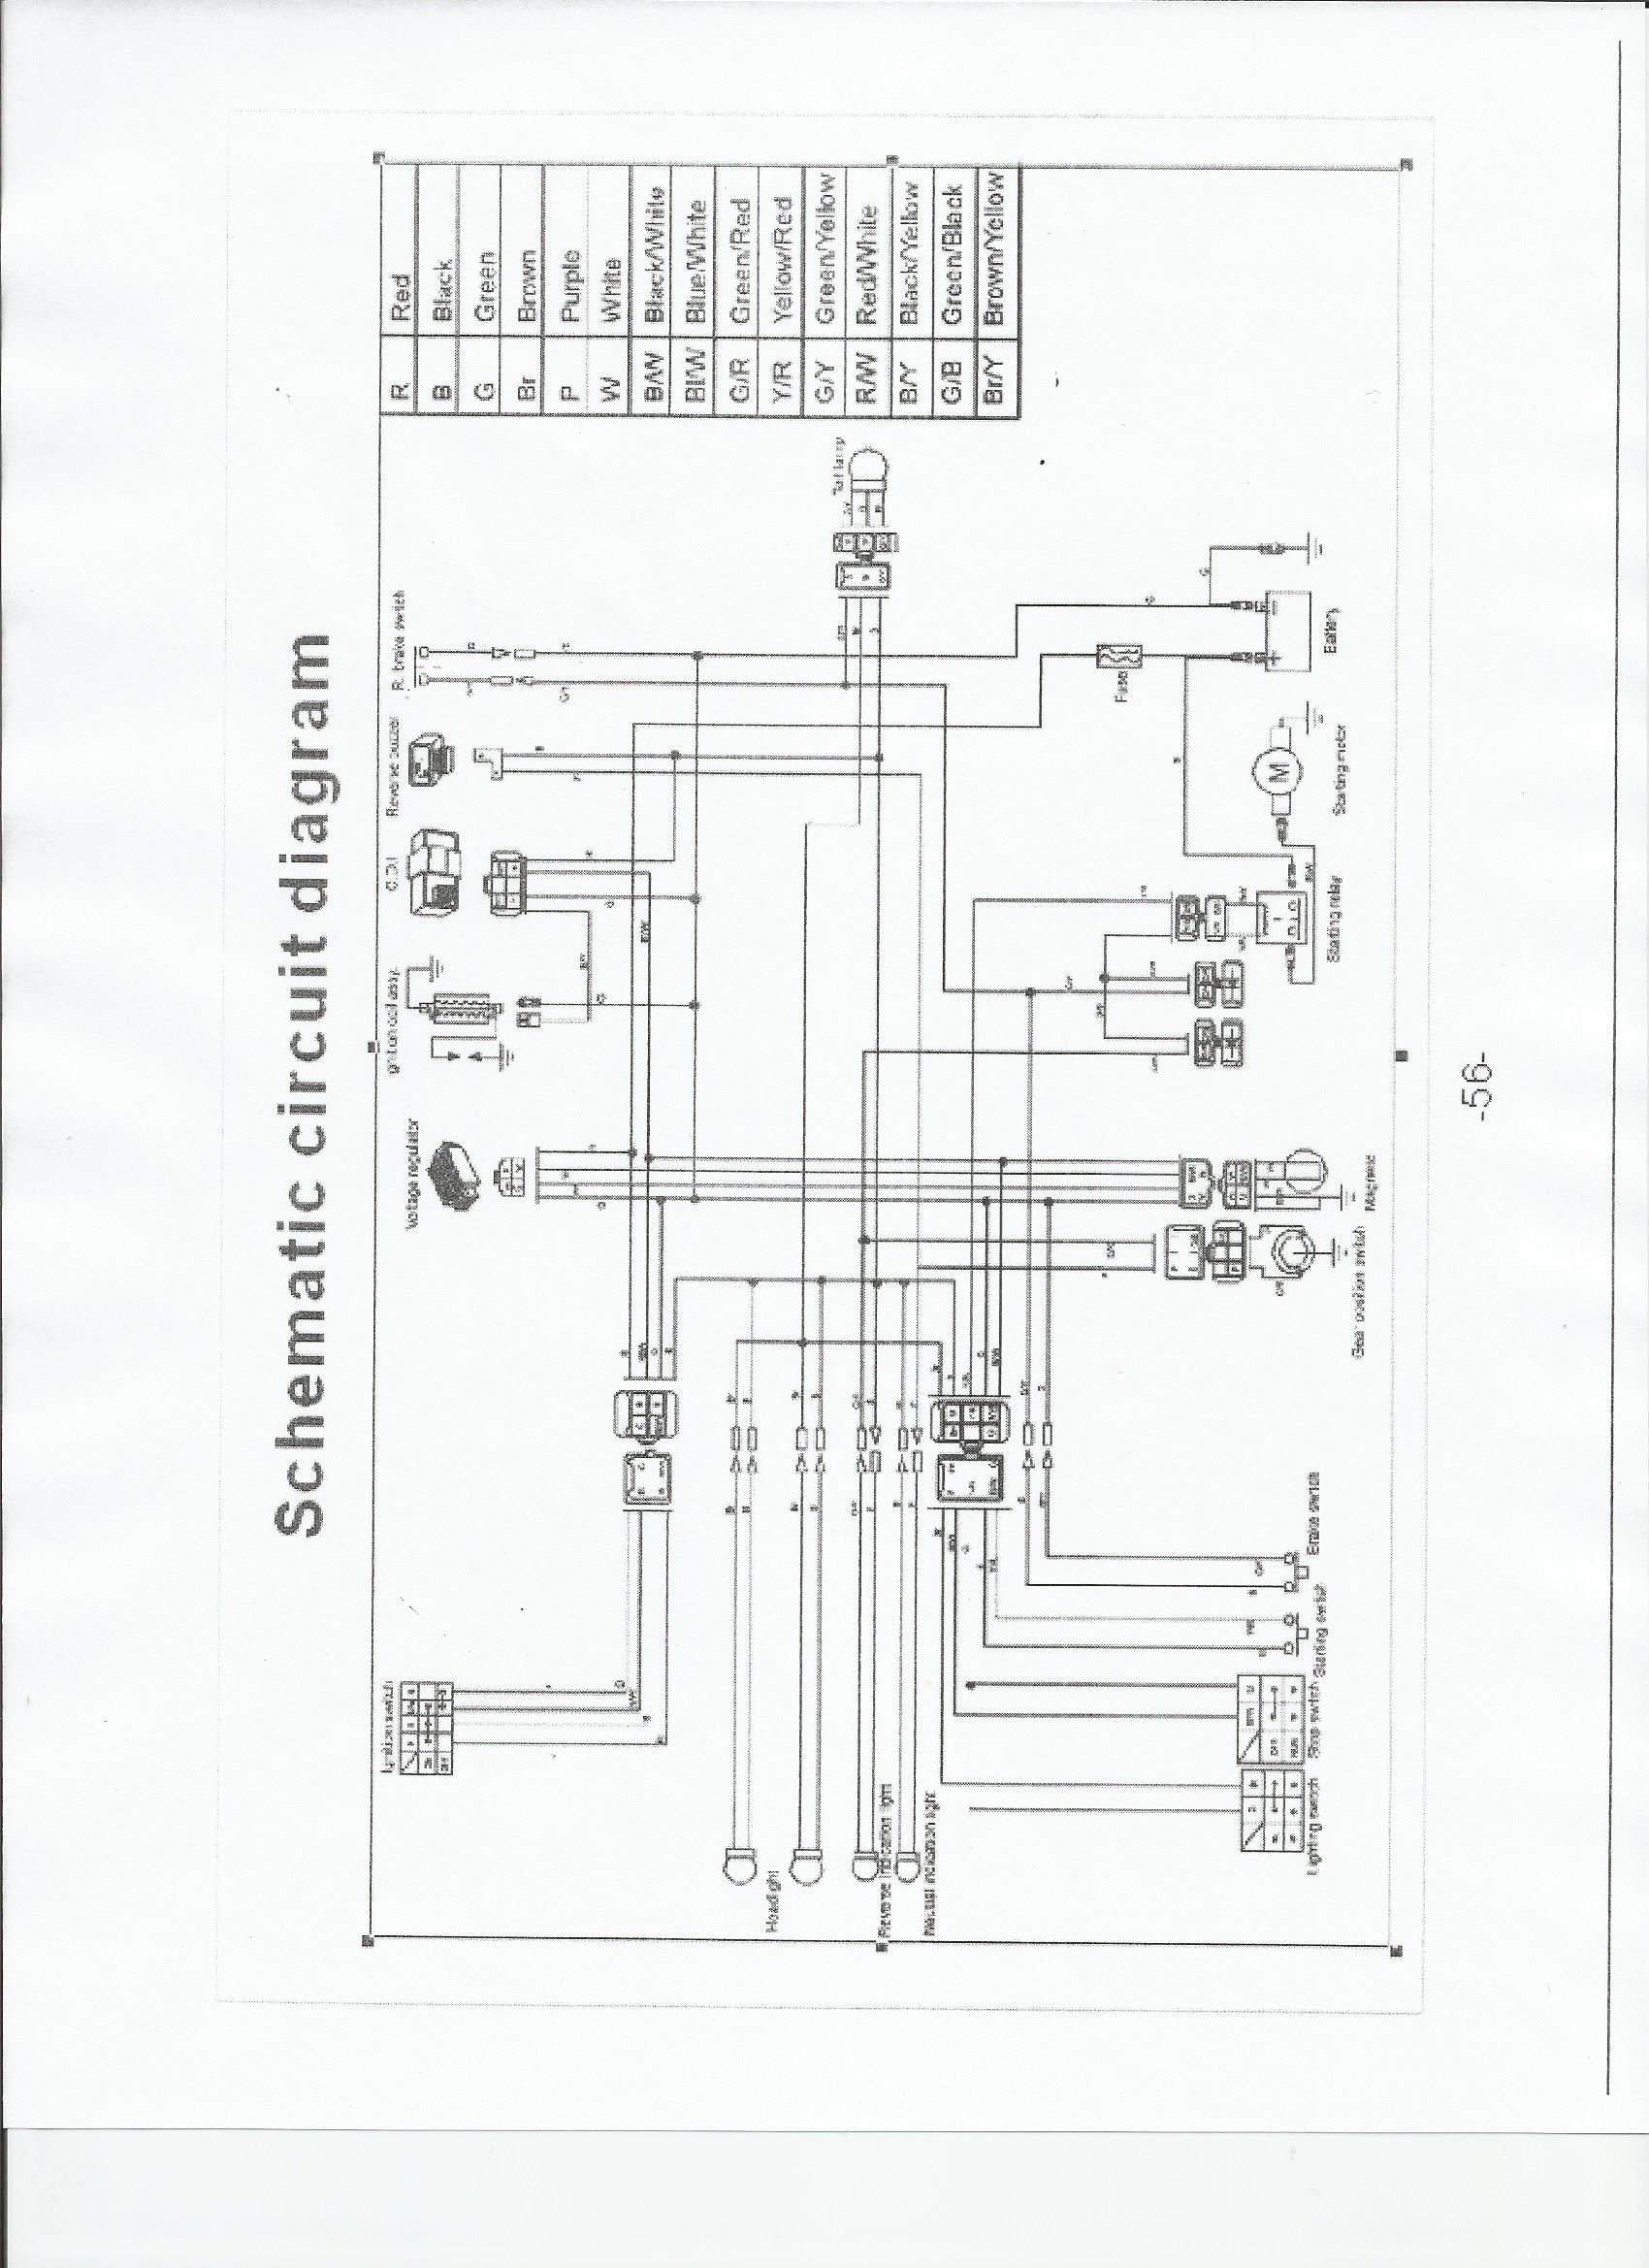 tao tao wiring schematic tao tao ata150 wiring schematic taotao 250cc atv wiring diagram  at n-0.co